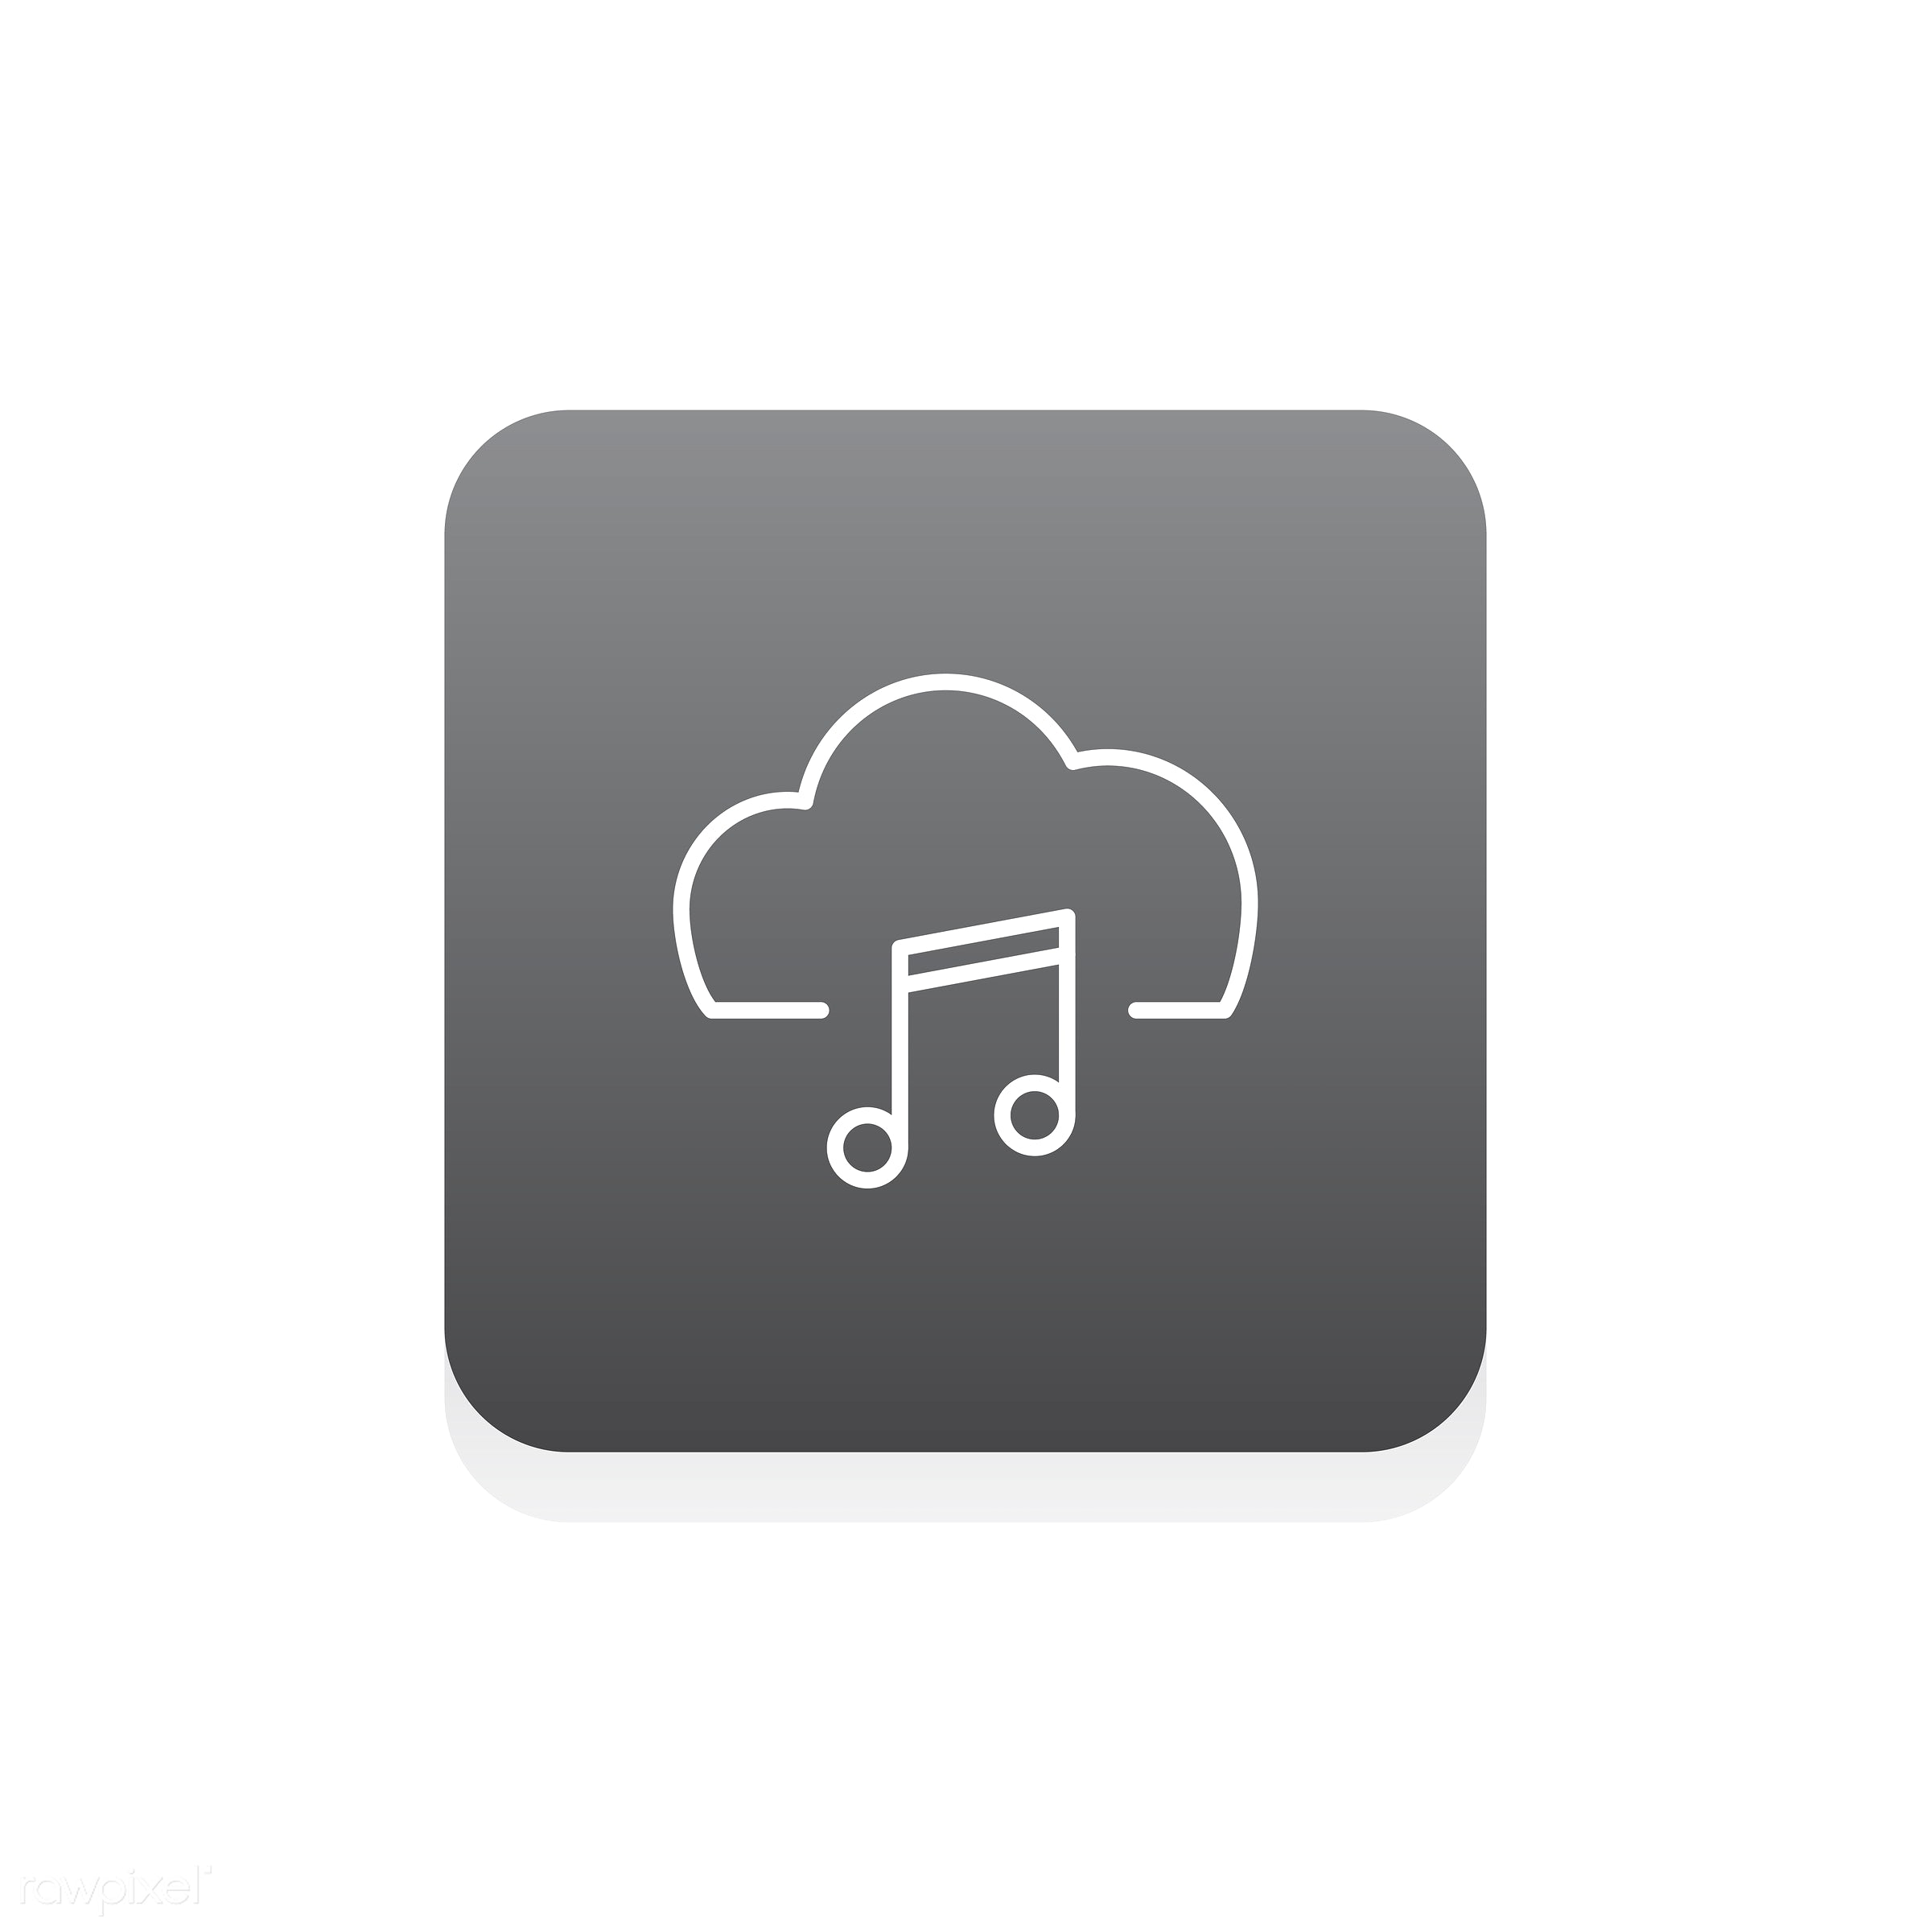 Vector of website data storage icons - music, audio, design, entertainment, flat, graphic, icon, illustration, isolated,...